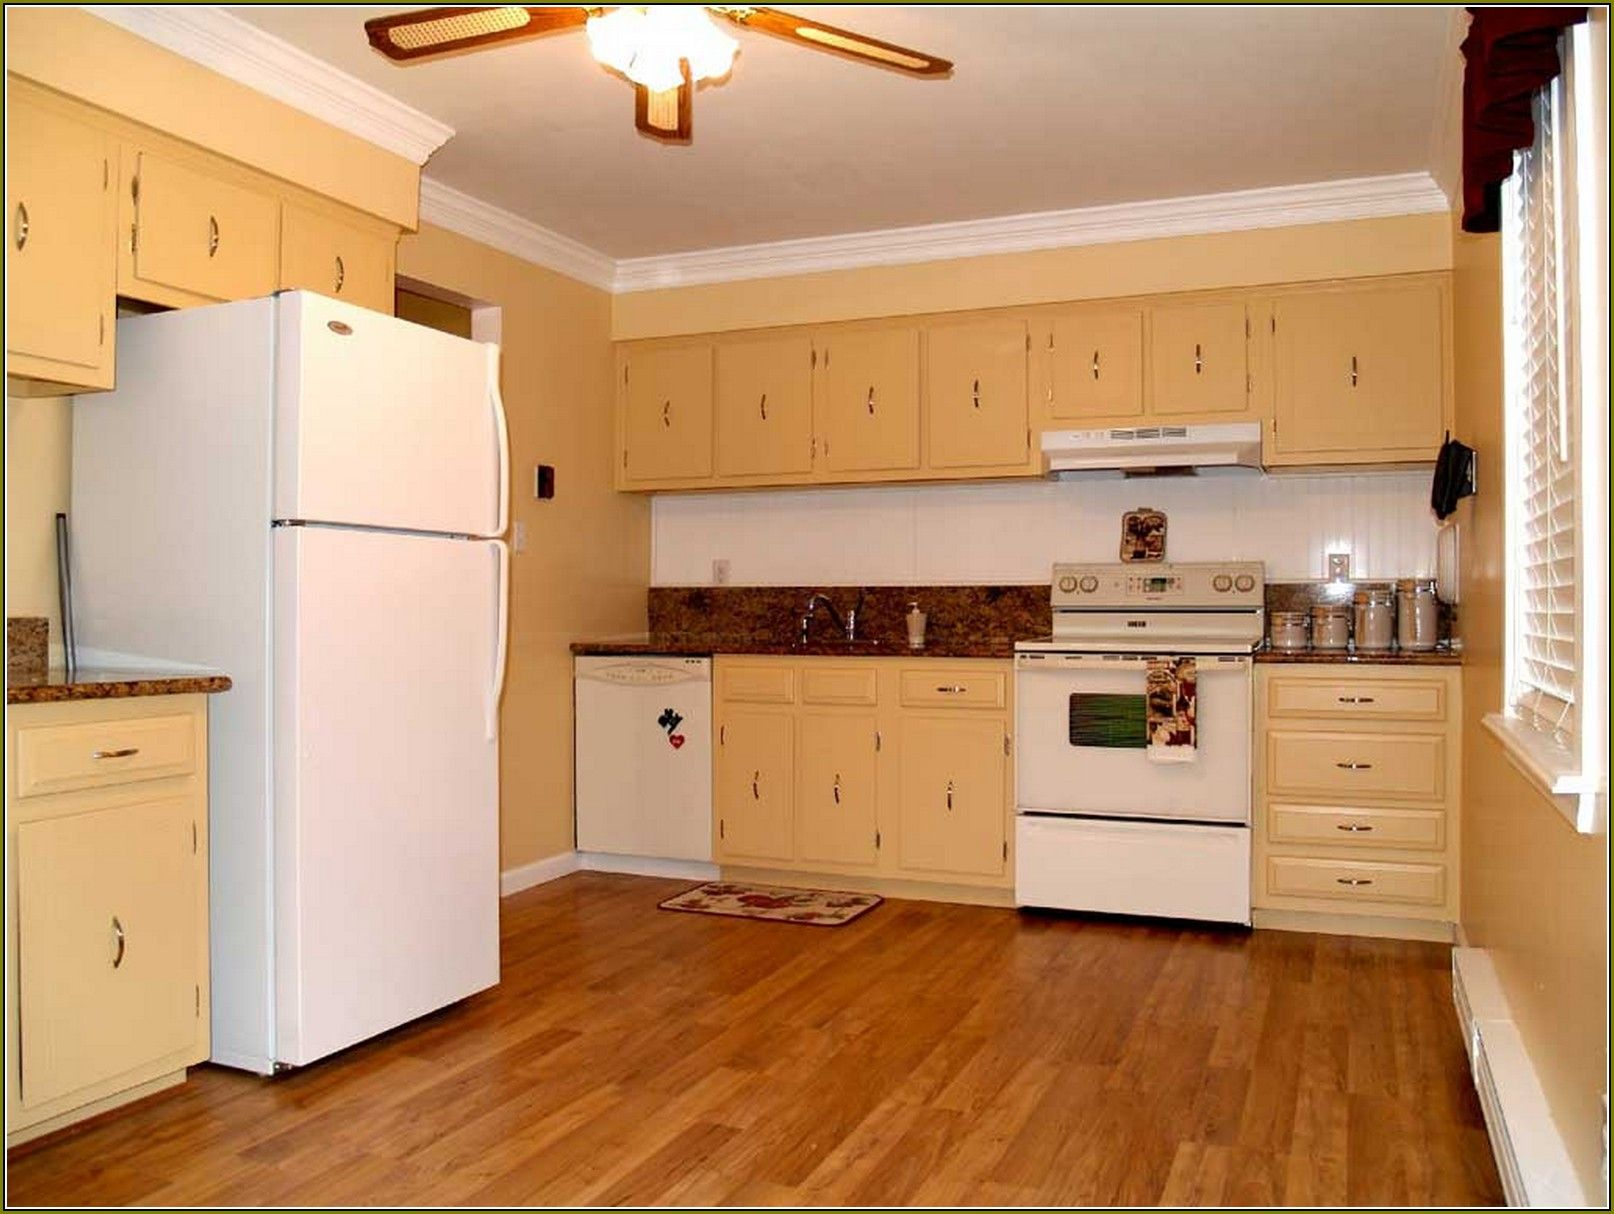 your home improvements refference diy plywood kitchen cabinets ana white quot wall cabinet projects your home improvements refference diy plywood kitchen cabinets ana      rh   pinterest com